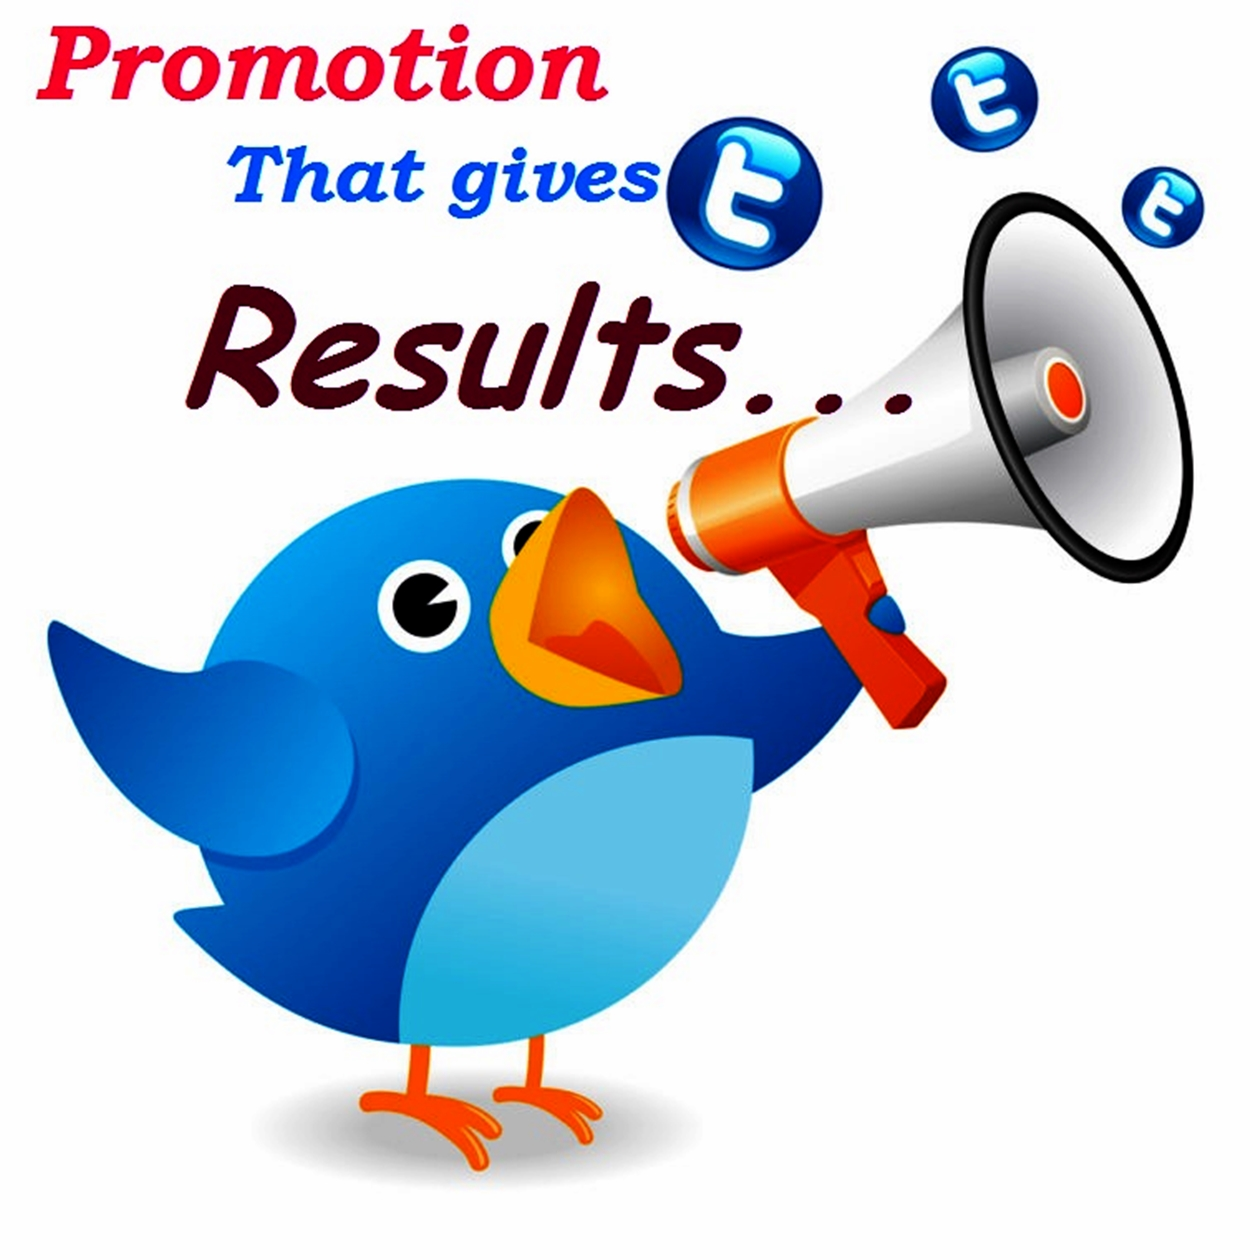 Tweeter MARKETING Tweet PRODUCT App Website  Ad or Article or Offer From My Account For Massive Exposure Traffic Sign-Up OR Sale from Active Friends -BEST Professional Method